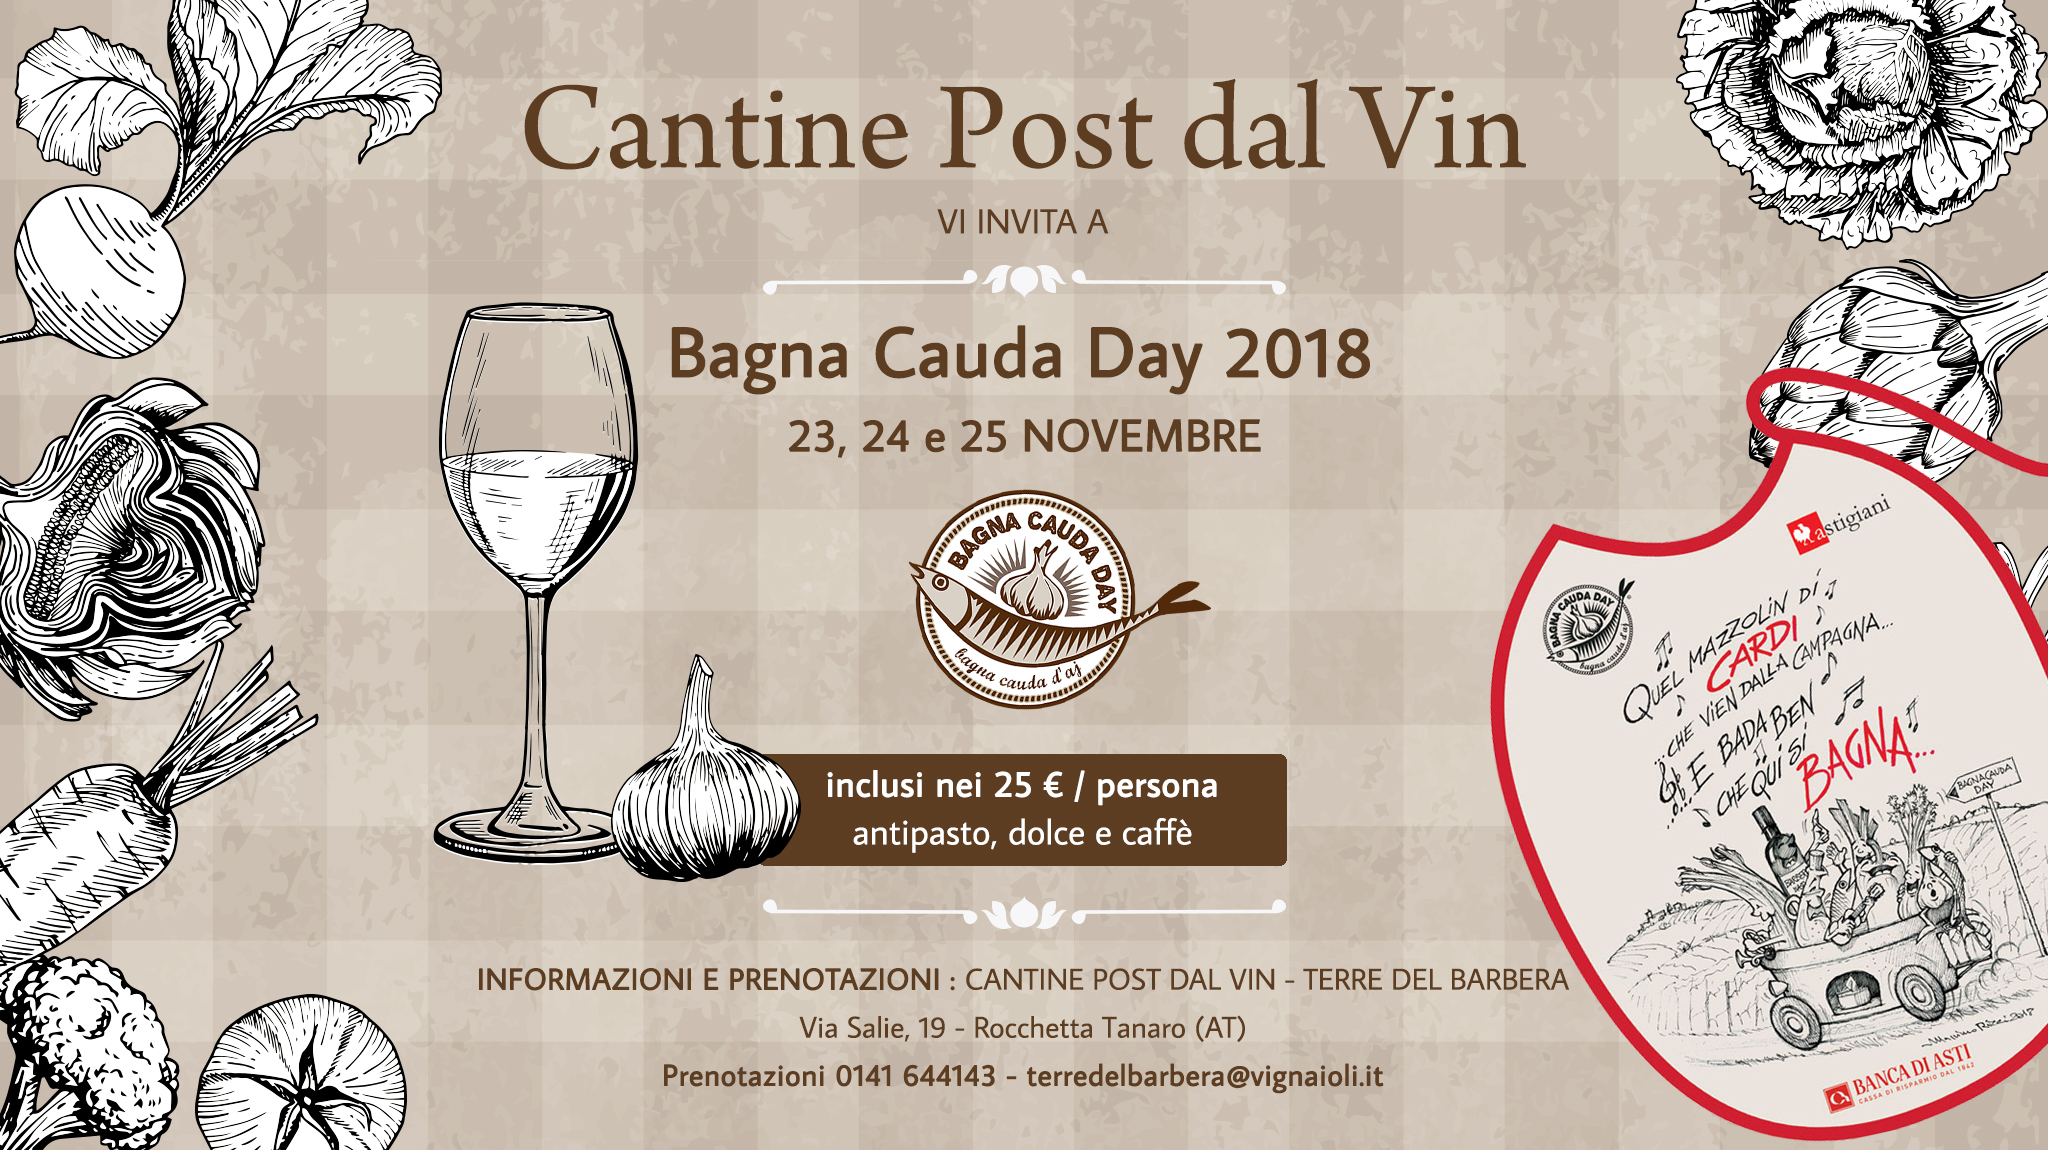 Bagna Cauda Day 2018 Cantine post dal Vin